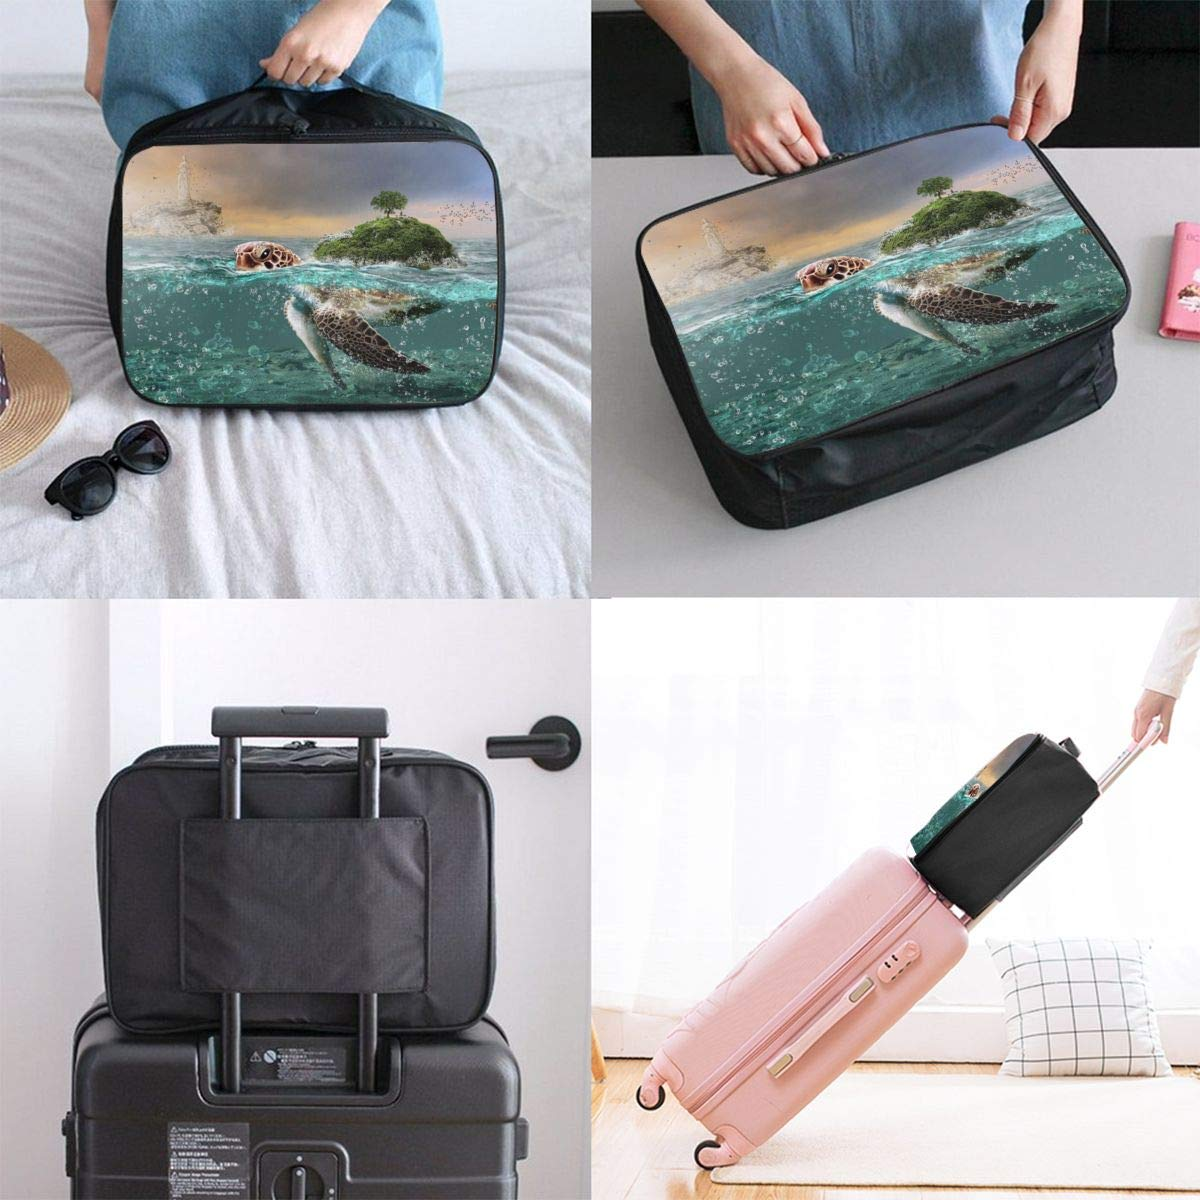 Tortoise Island Woman Statue Travel Lightweight Waterproof Folding Storage Portable Luggage Duffle Tote Bag Large Capacity In Trolley Handle Bags 6x11x15 Inch